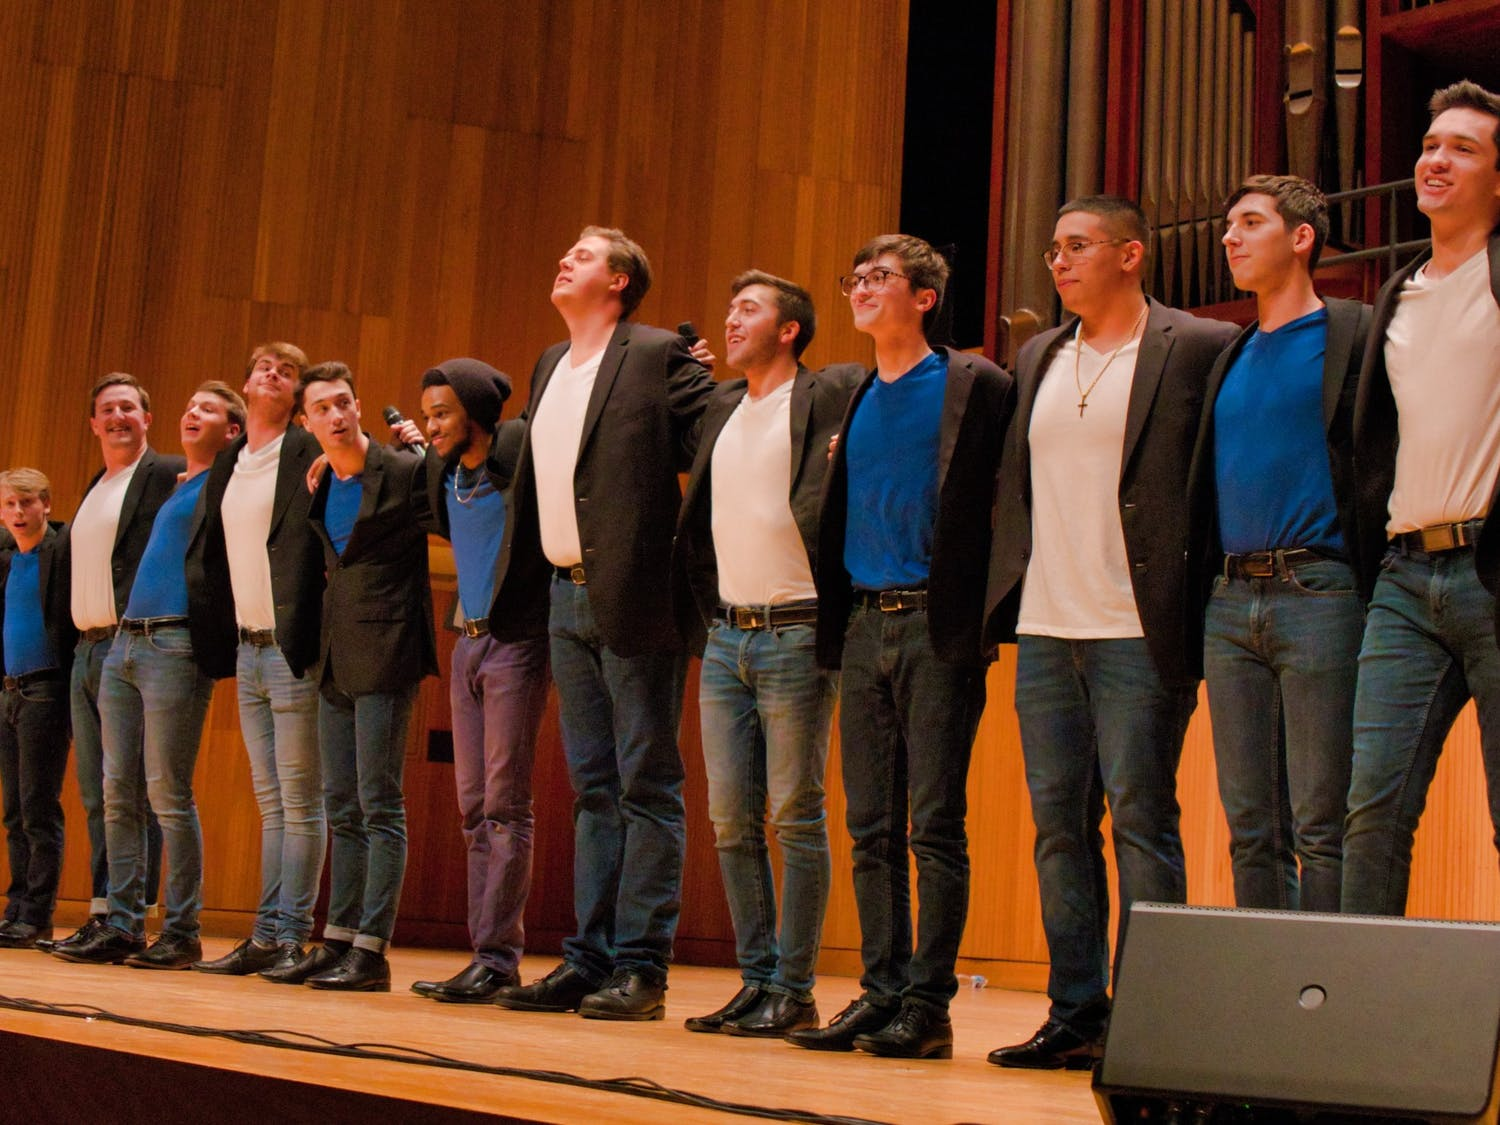 The Buffalo Chips assemble together on stage after their annual Fall Classic at Slee Hall on Saturday. The Chips celebrate their 25th anniversary next year.